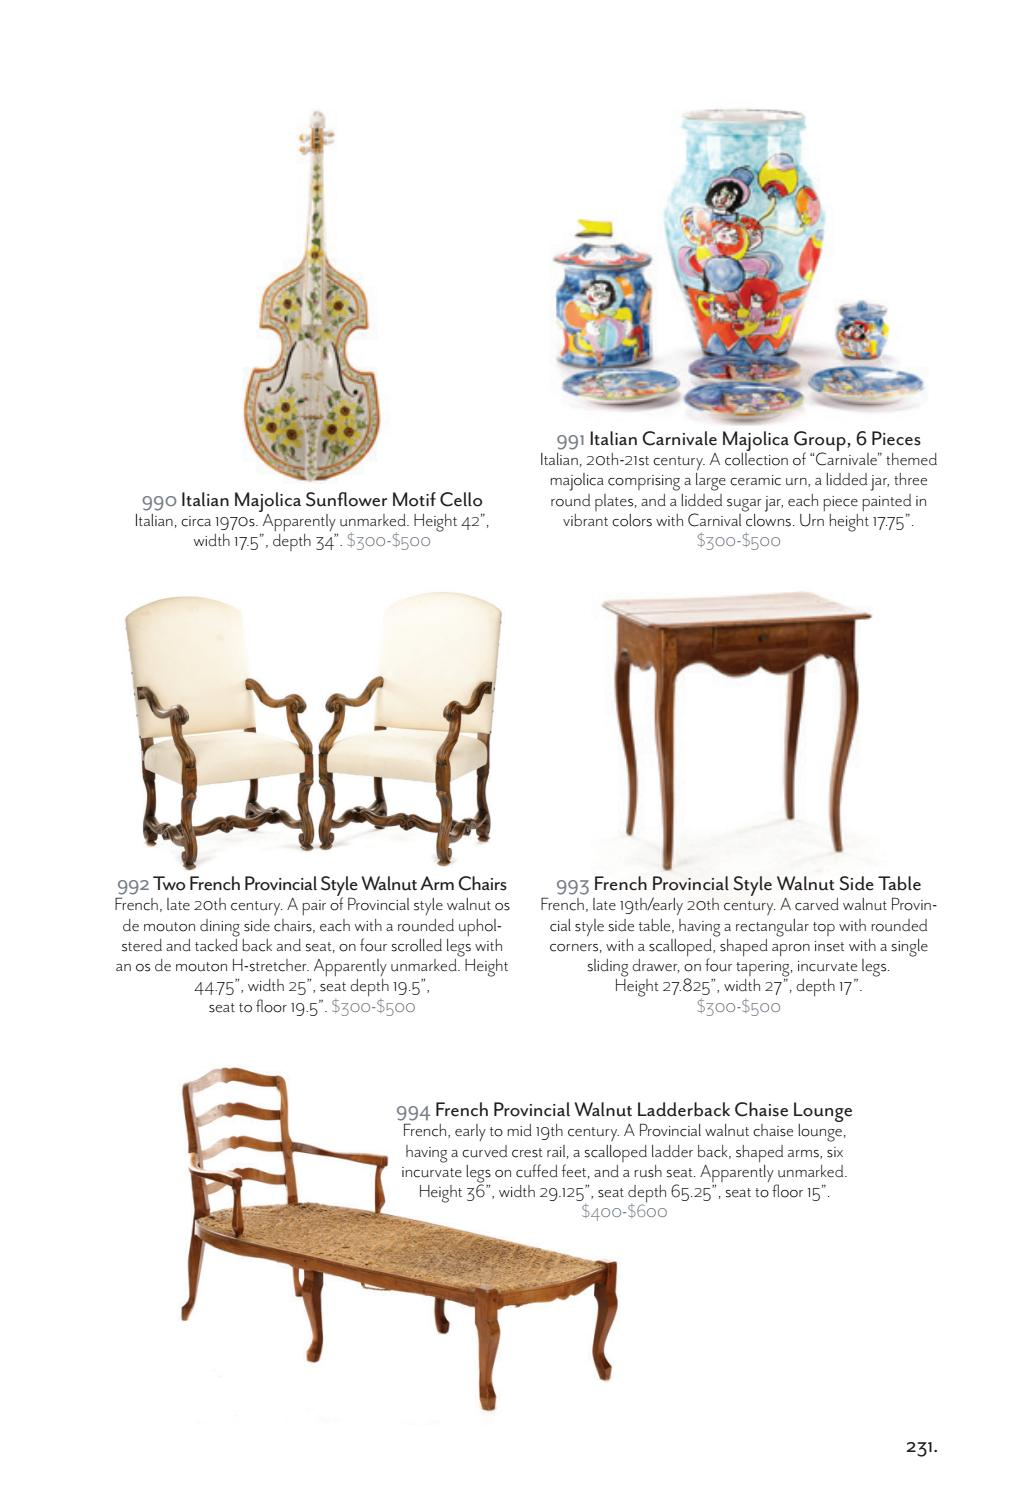 Magnificent Ahlers Ogletree January 2017 Auction Catalog New Years Cjindustries Chair Design For Home Cjindustriesco